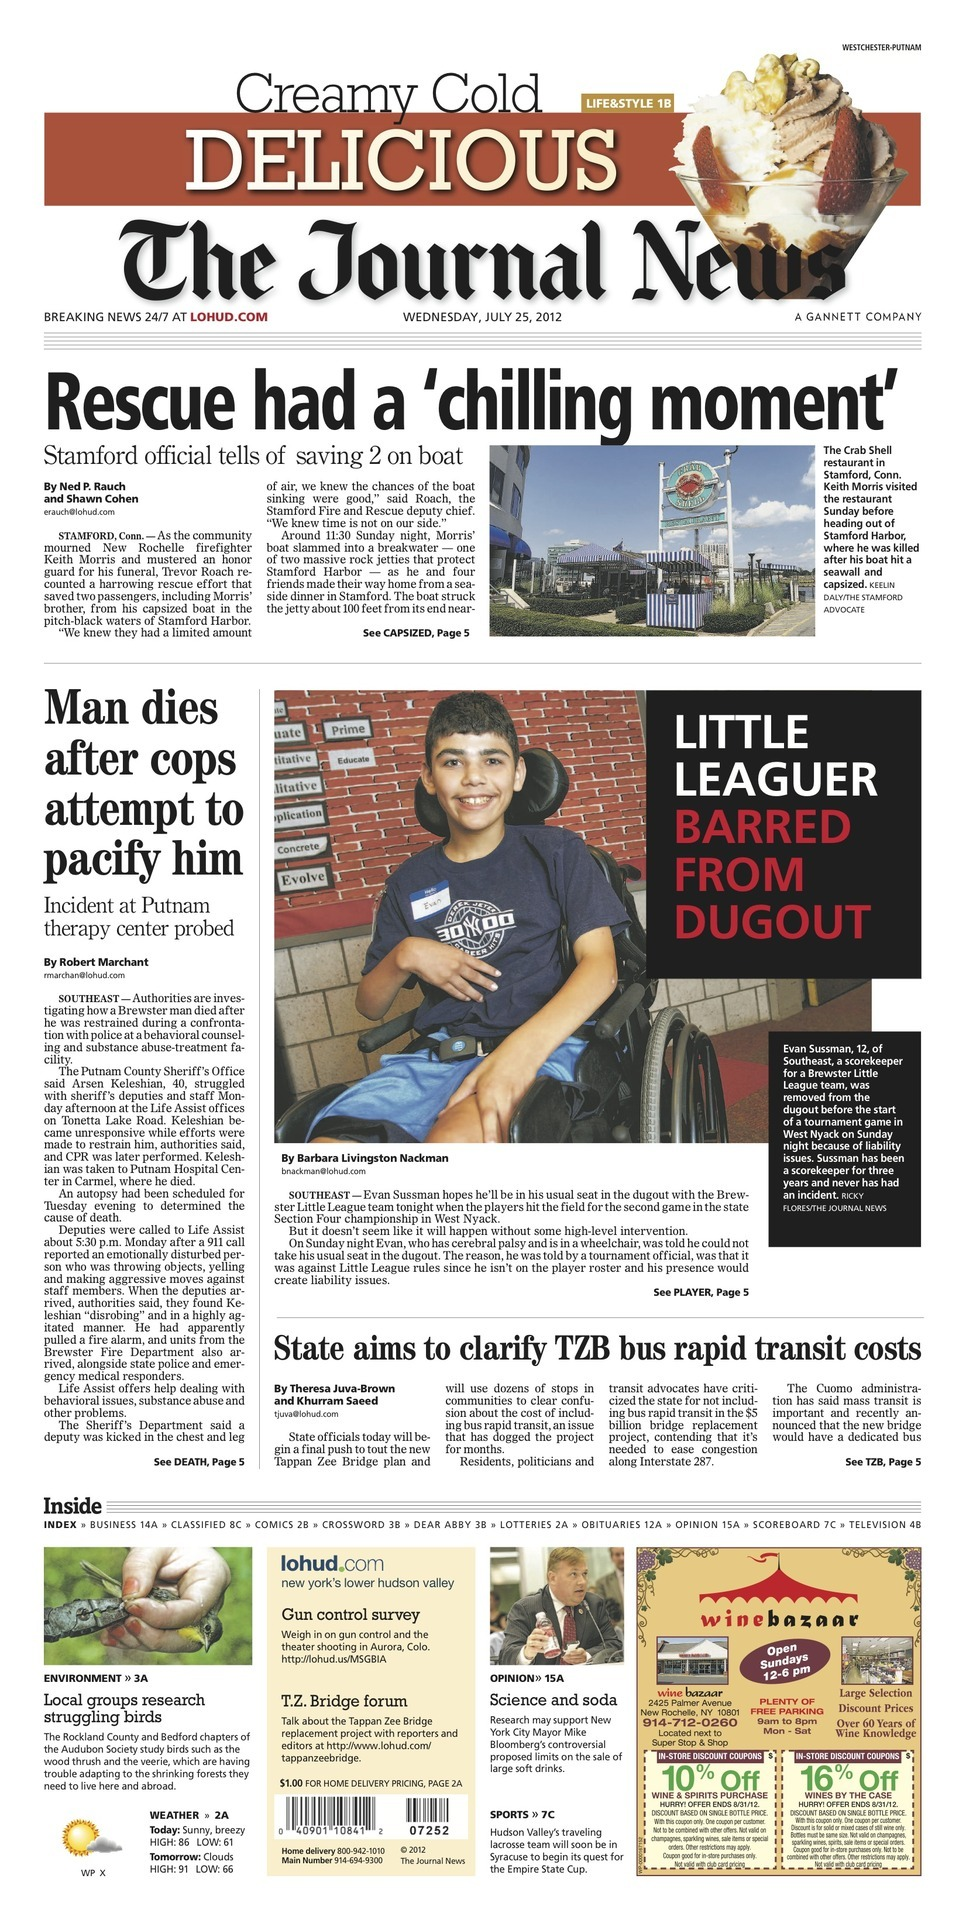 From page one: LITTLE LEAGUER BARRED FROM DUGOUT Rescue had a 'chilling moment' Man dies after cops attempt to pacify him State aims to clarify TZB bus rapid transit cost